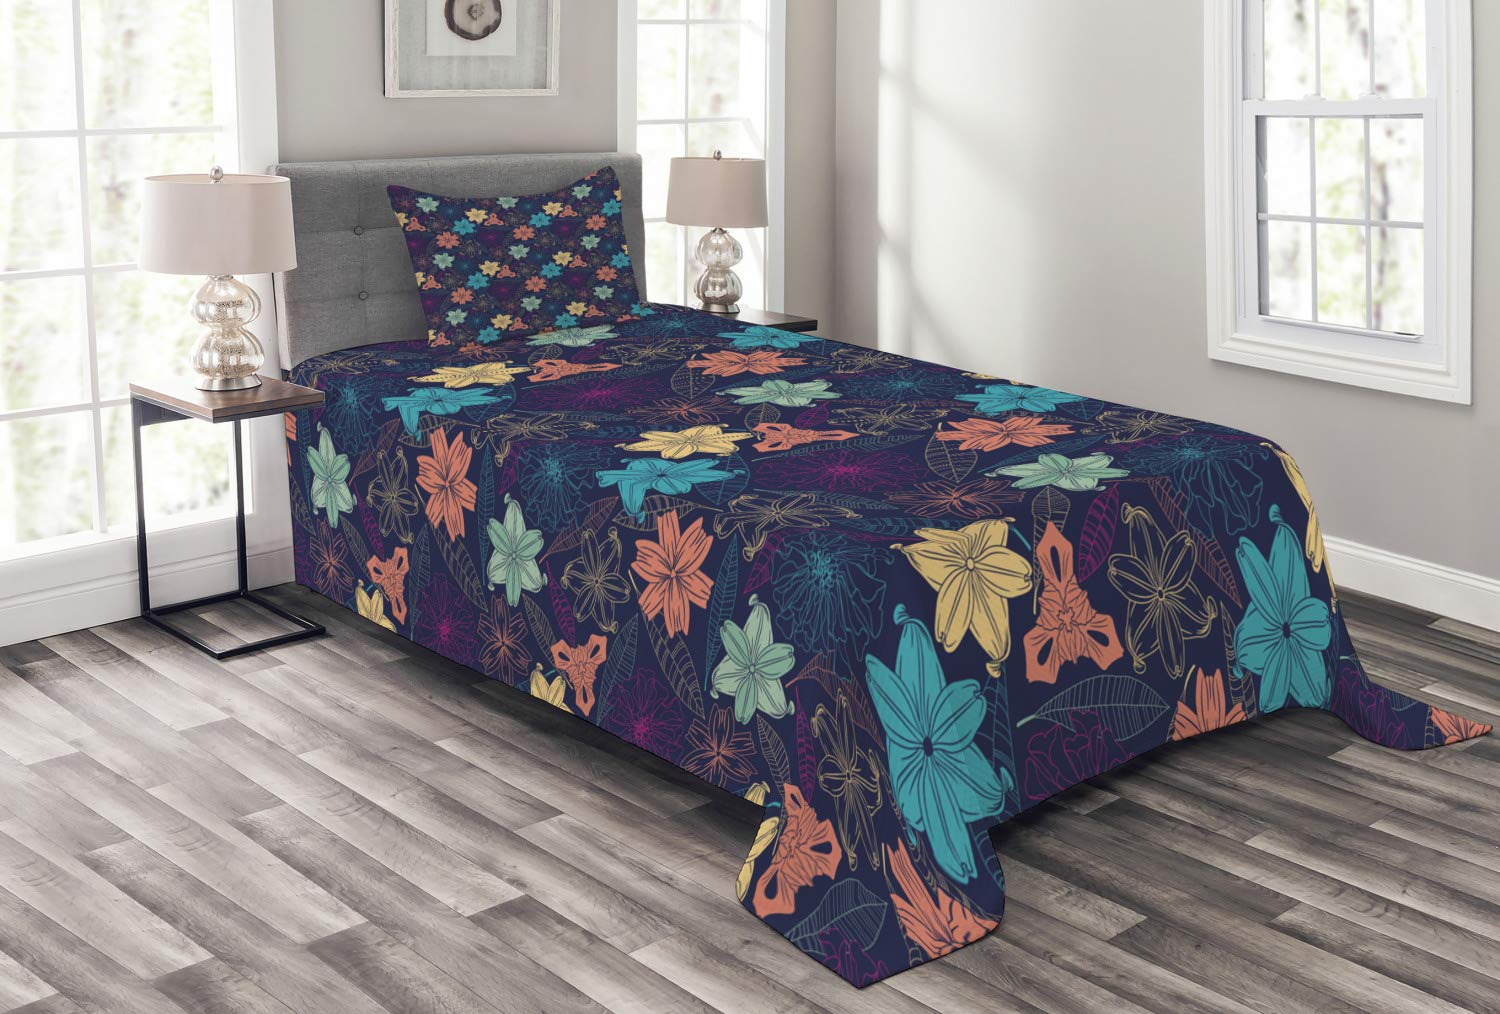 Ambesonne Floral Bedspread, Exotic Hibiscus Petals in Warm Tones Beach Palm Tree Wild Dreamy Tropical Graphic, Decorative Quilted 2 Piece Coverlet Set with Pillow Sham, Twin Size, Multicolor